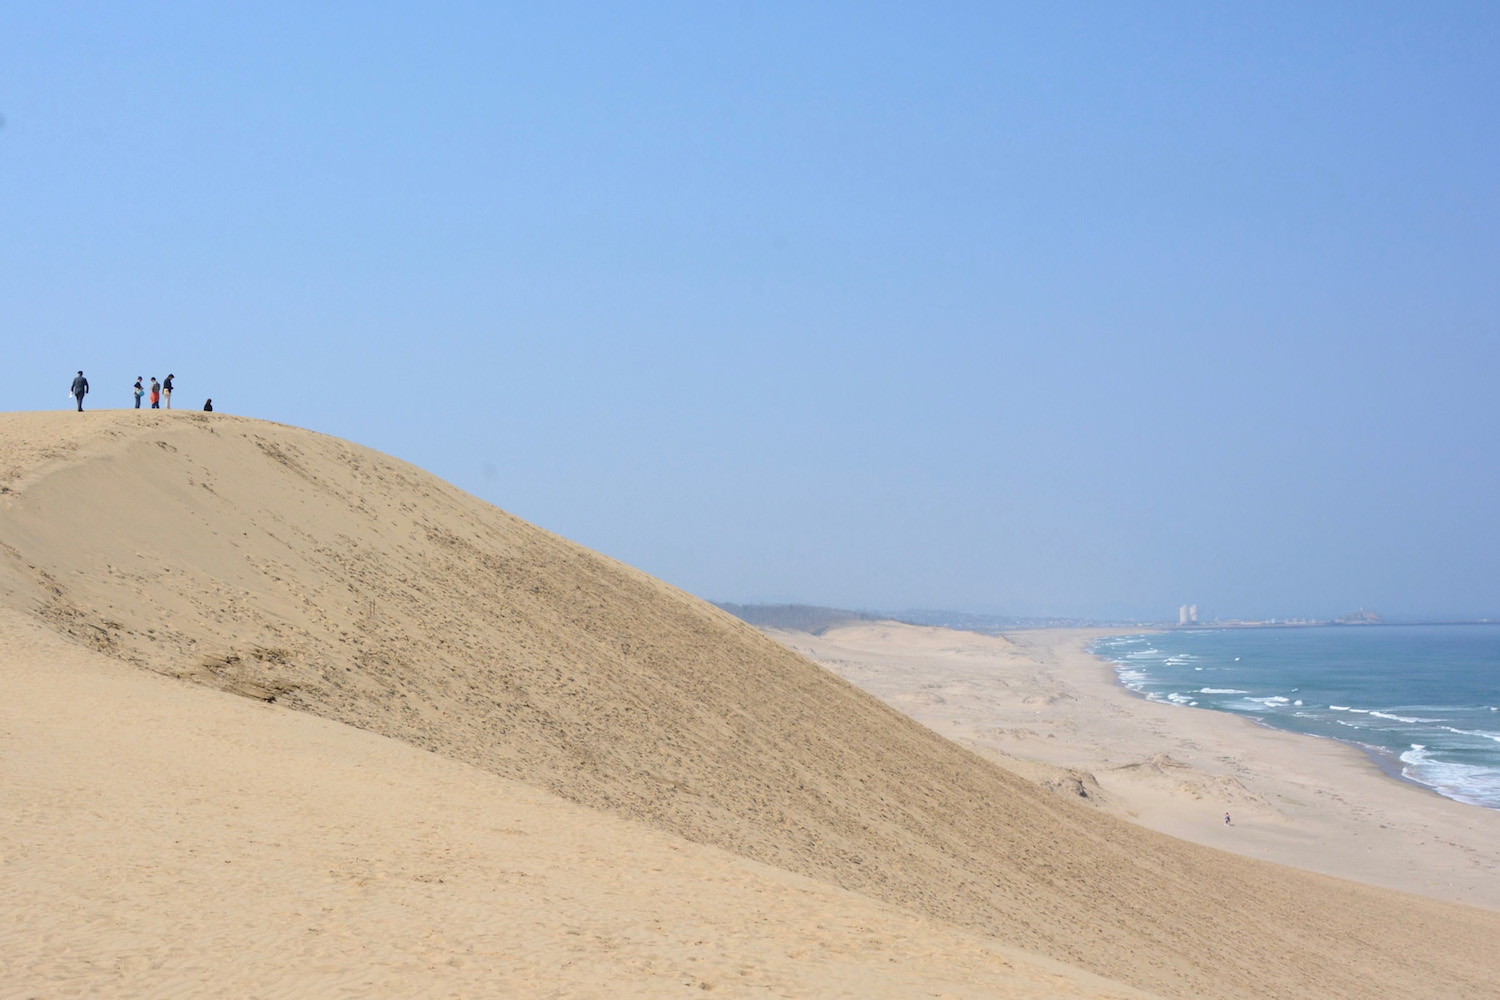 Dunes in desert in Tottori, Japan